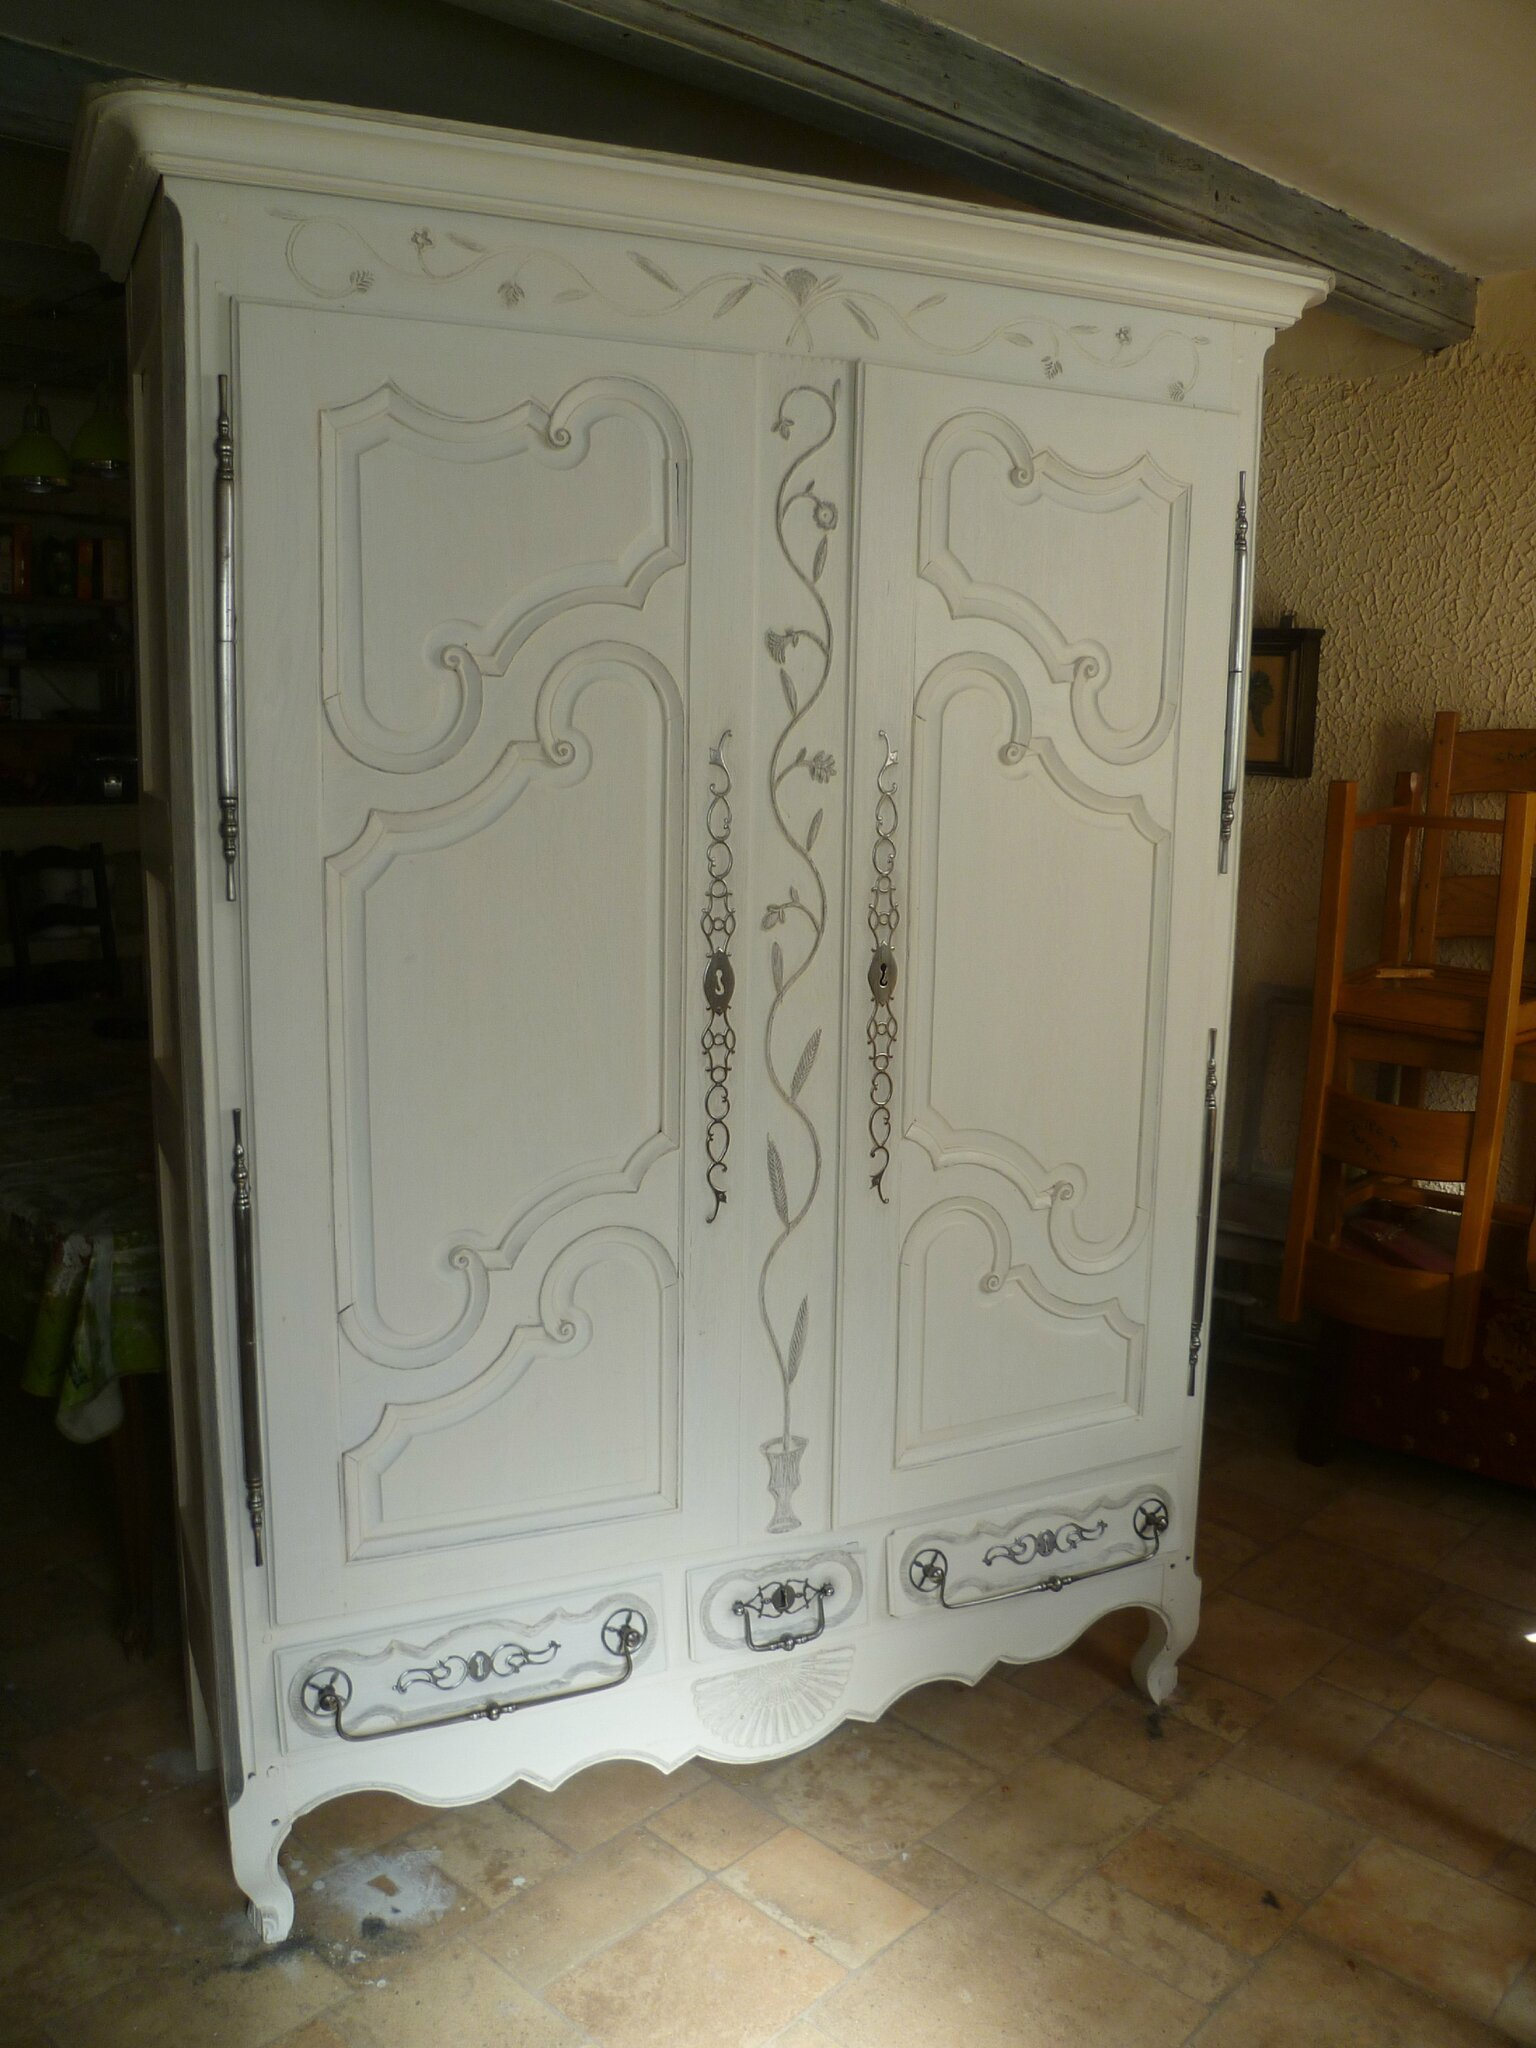 Tarif Relooking Meuble Relooker Armoire Bois Wr72 | Jornalagora